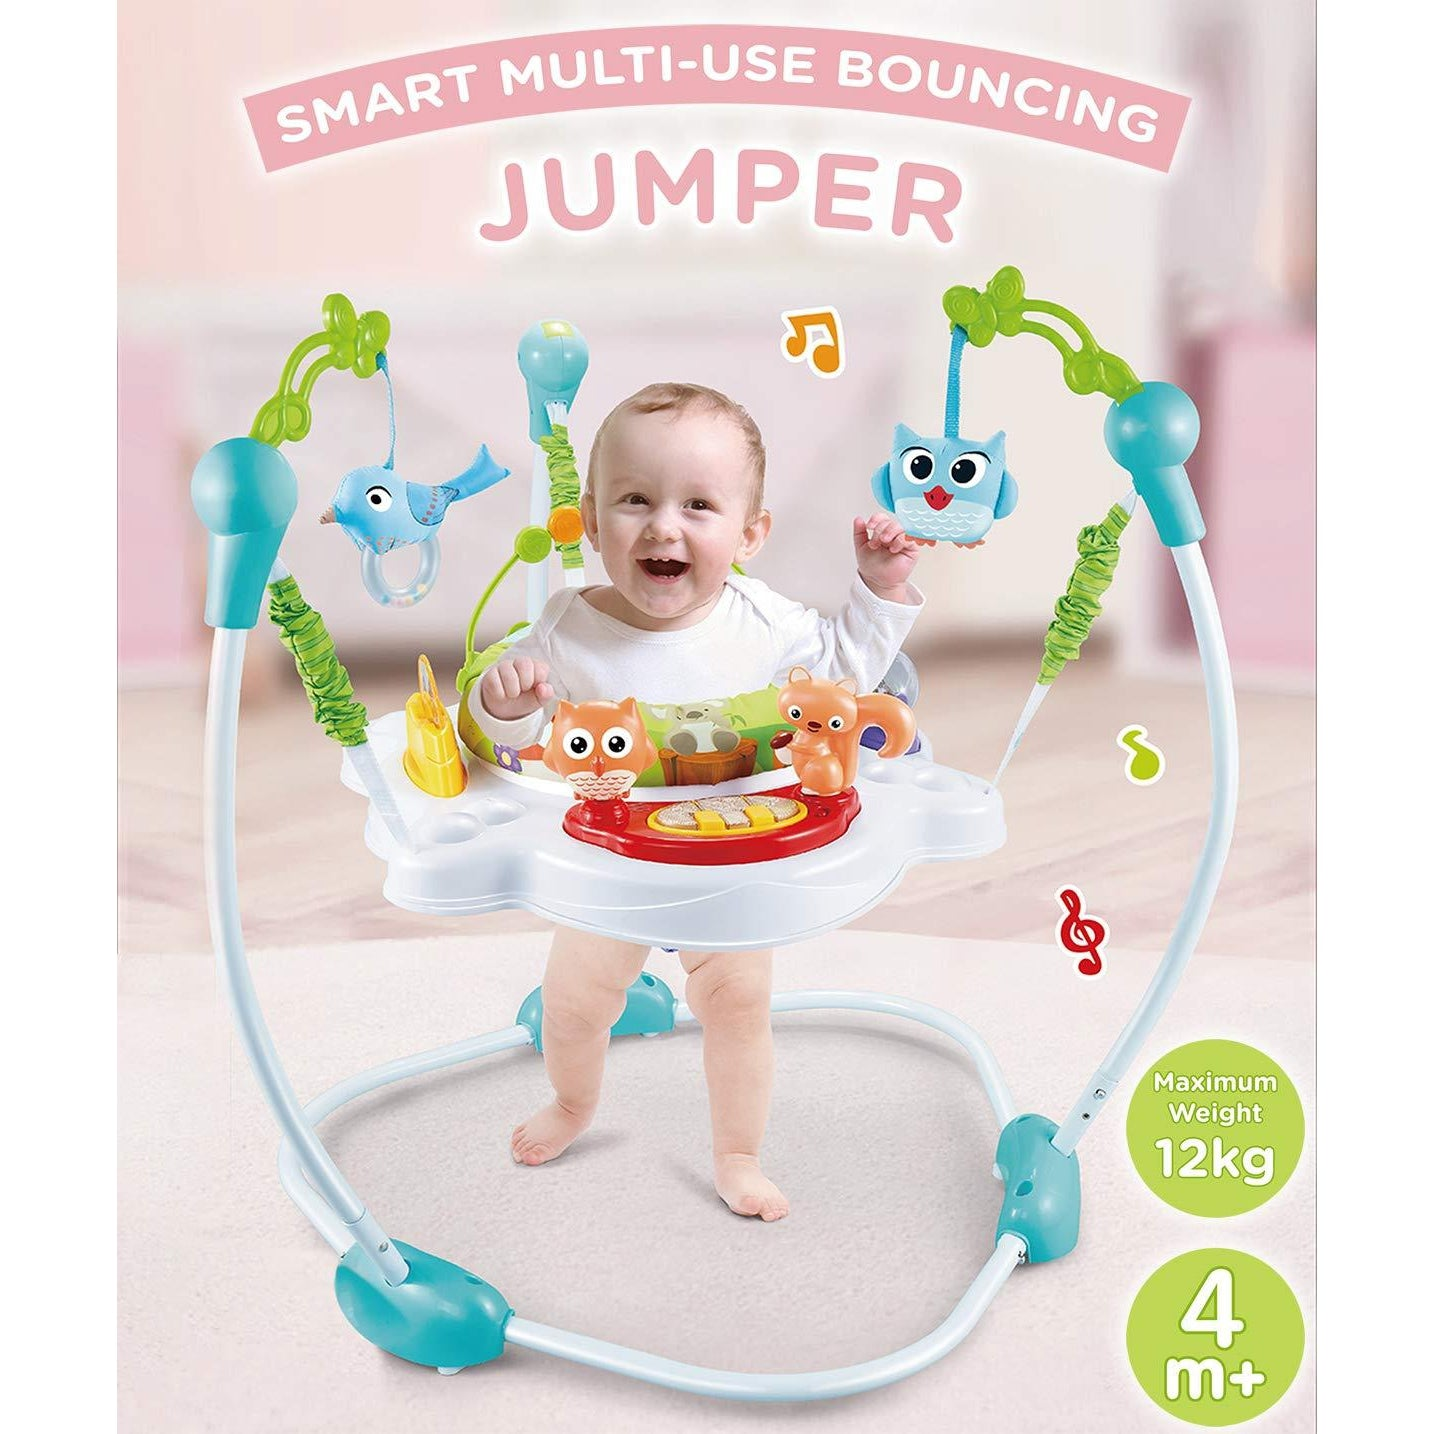 R for Rabbit Kangaroo Multi Use Baby Jumper Bouncer for babies